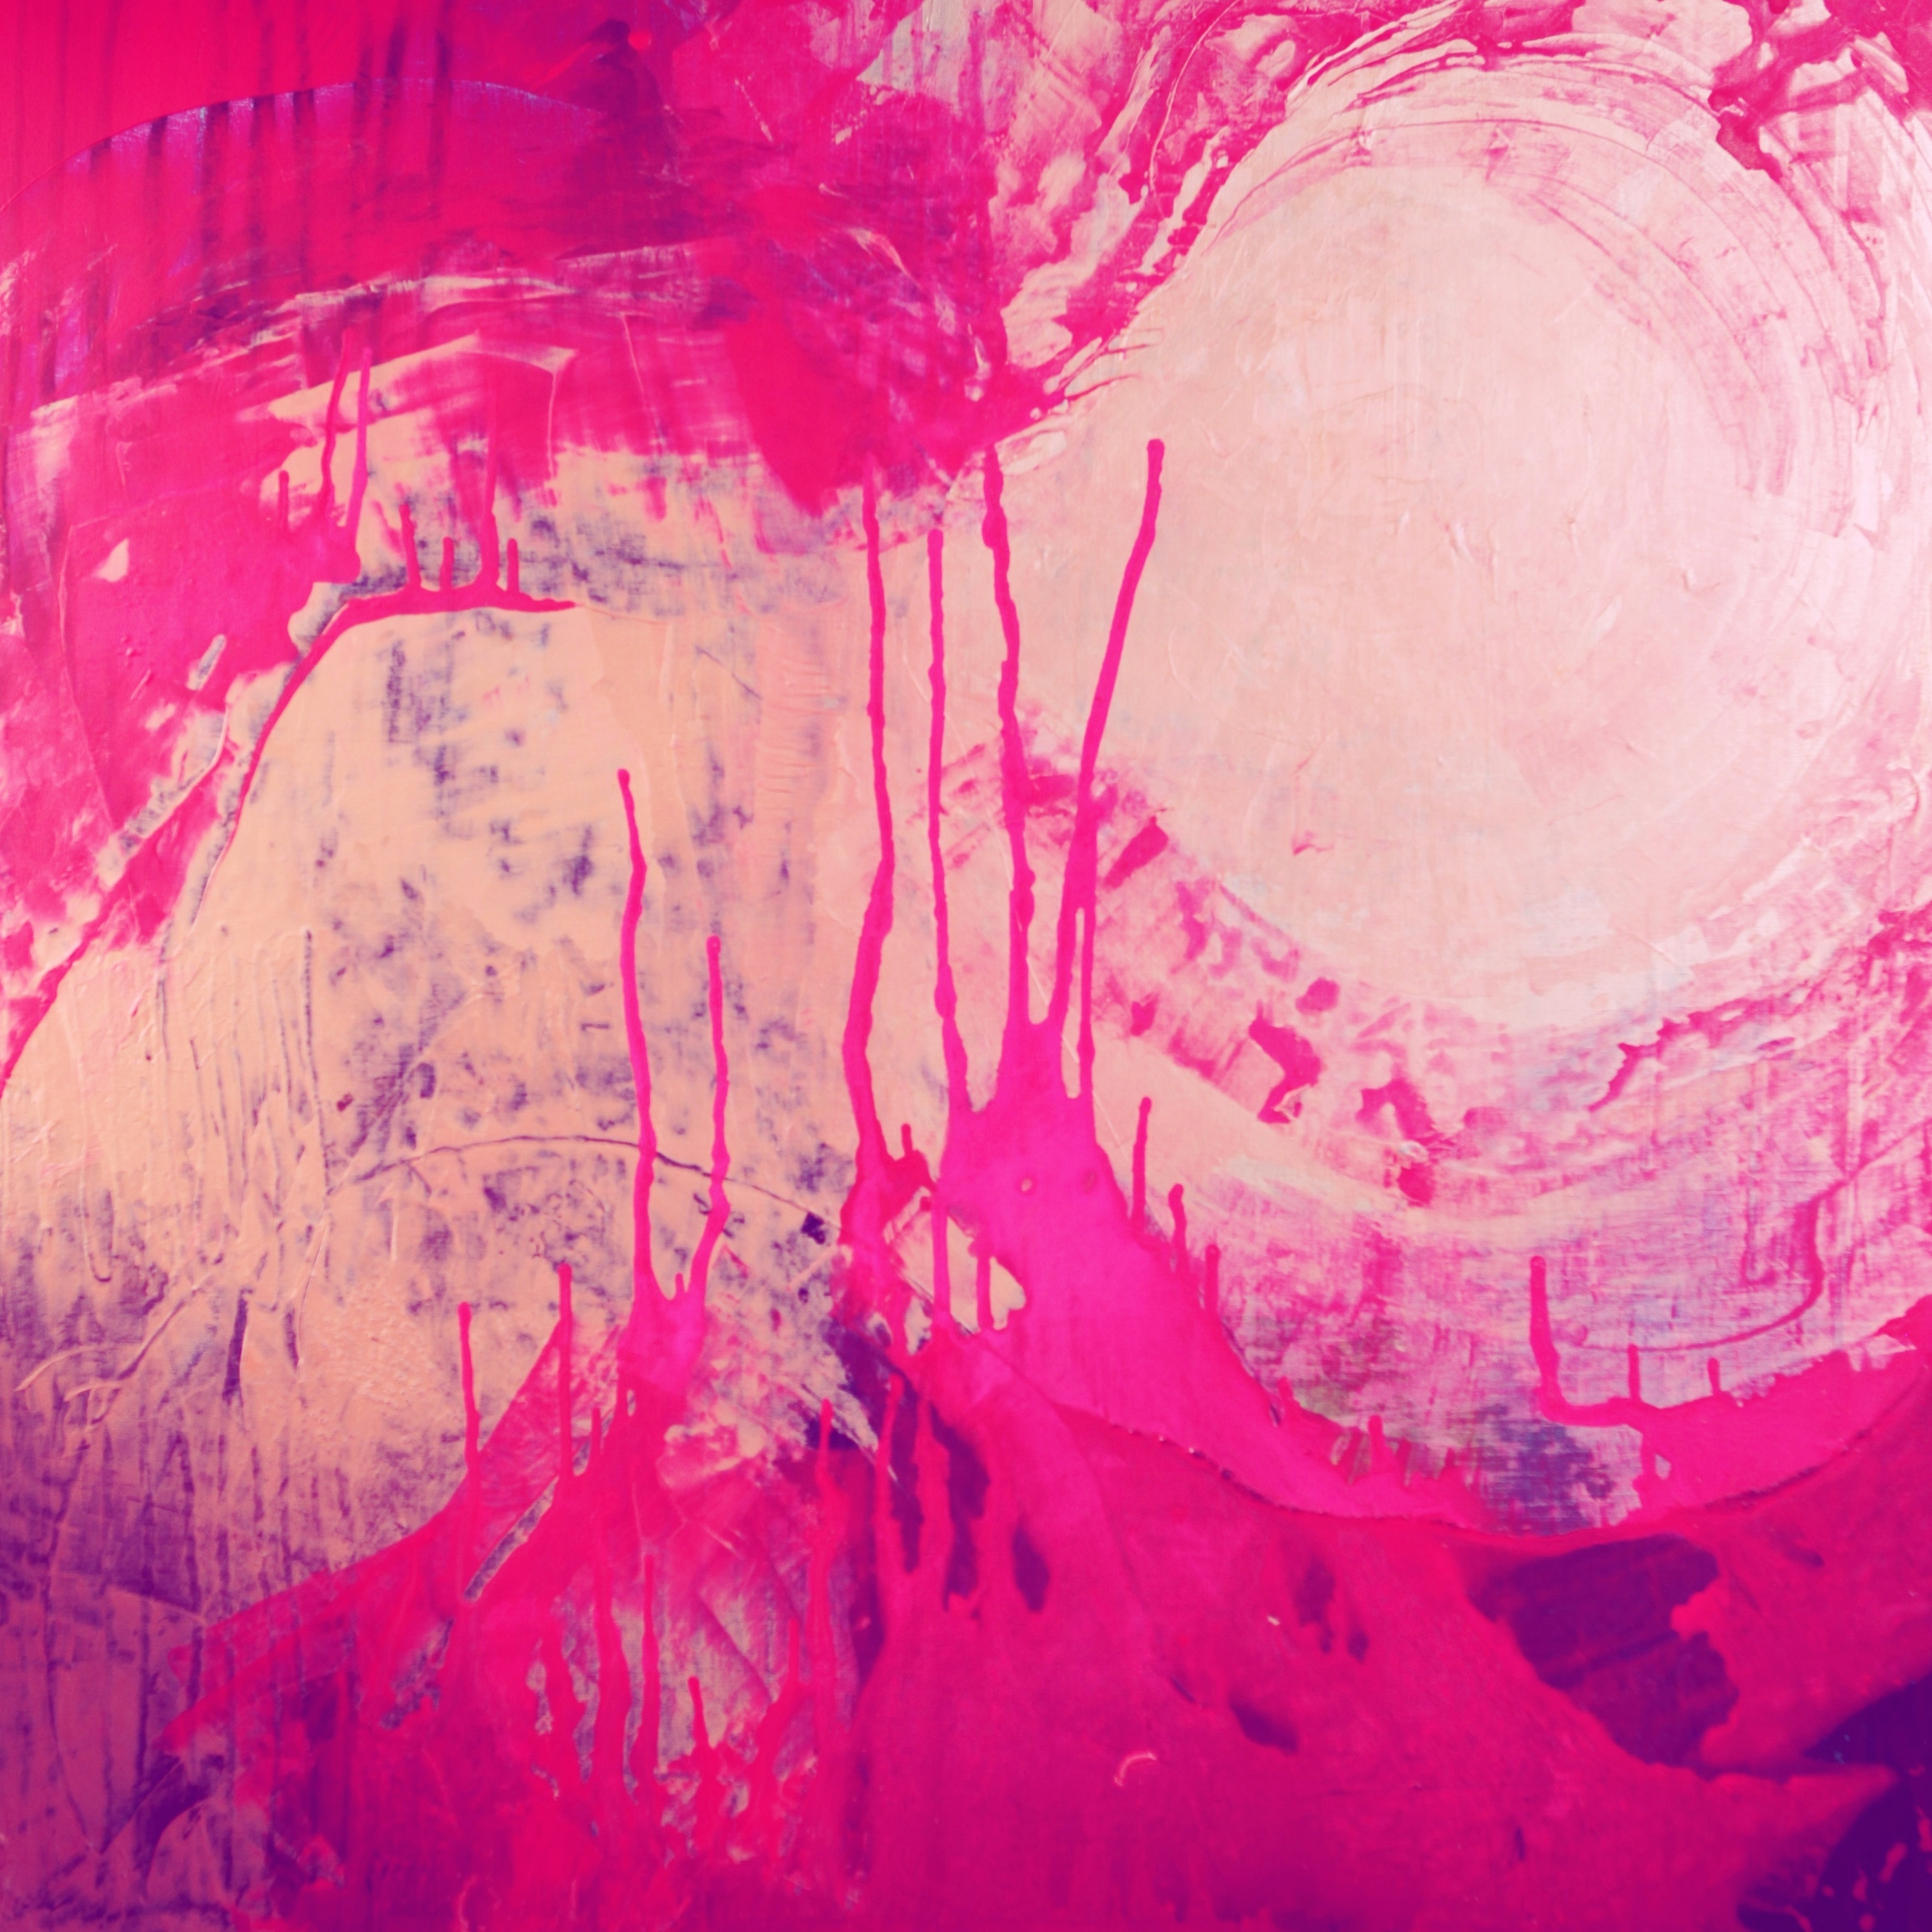 Magenta Magnete, Akryyli kankaalle, 130 cm x 130 cm  Myyty / Sold